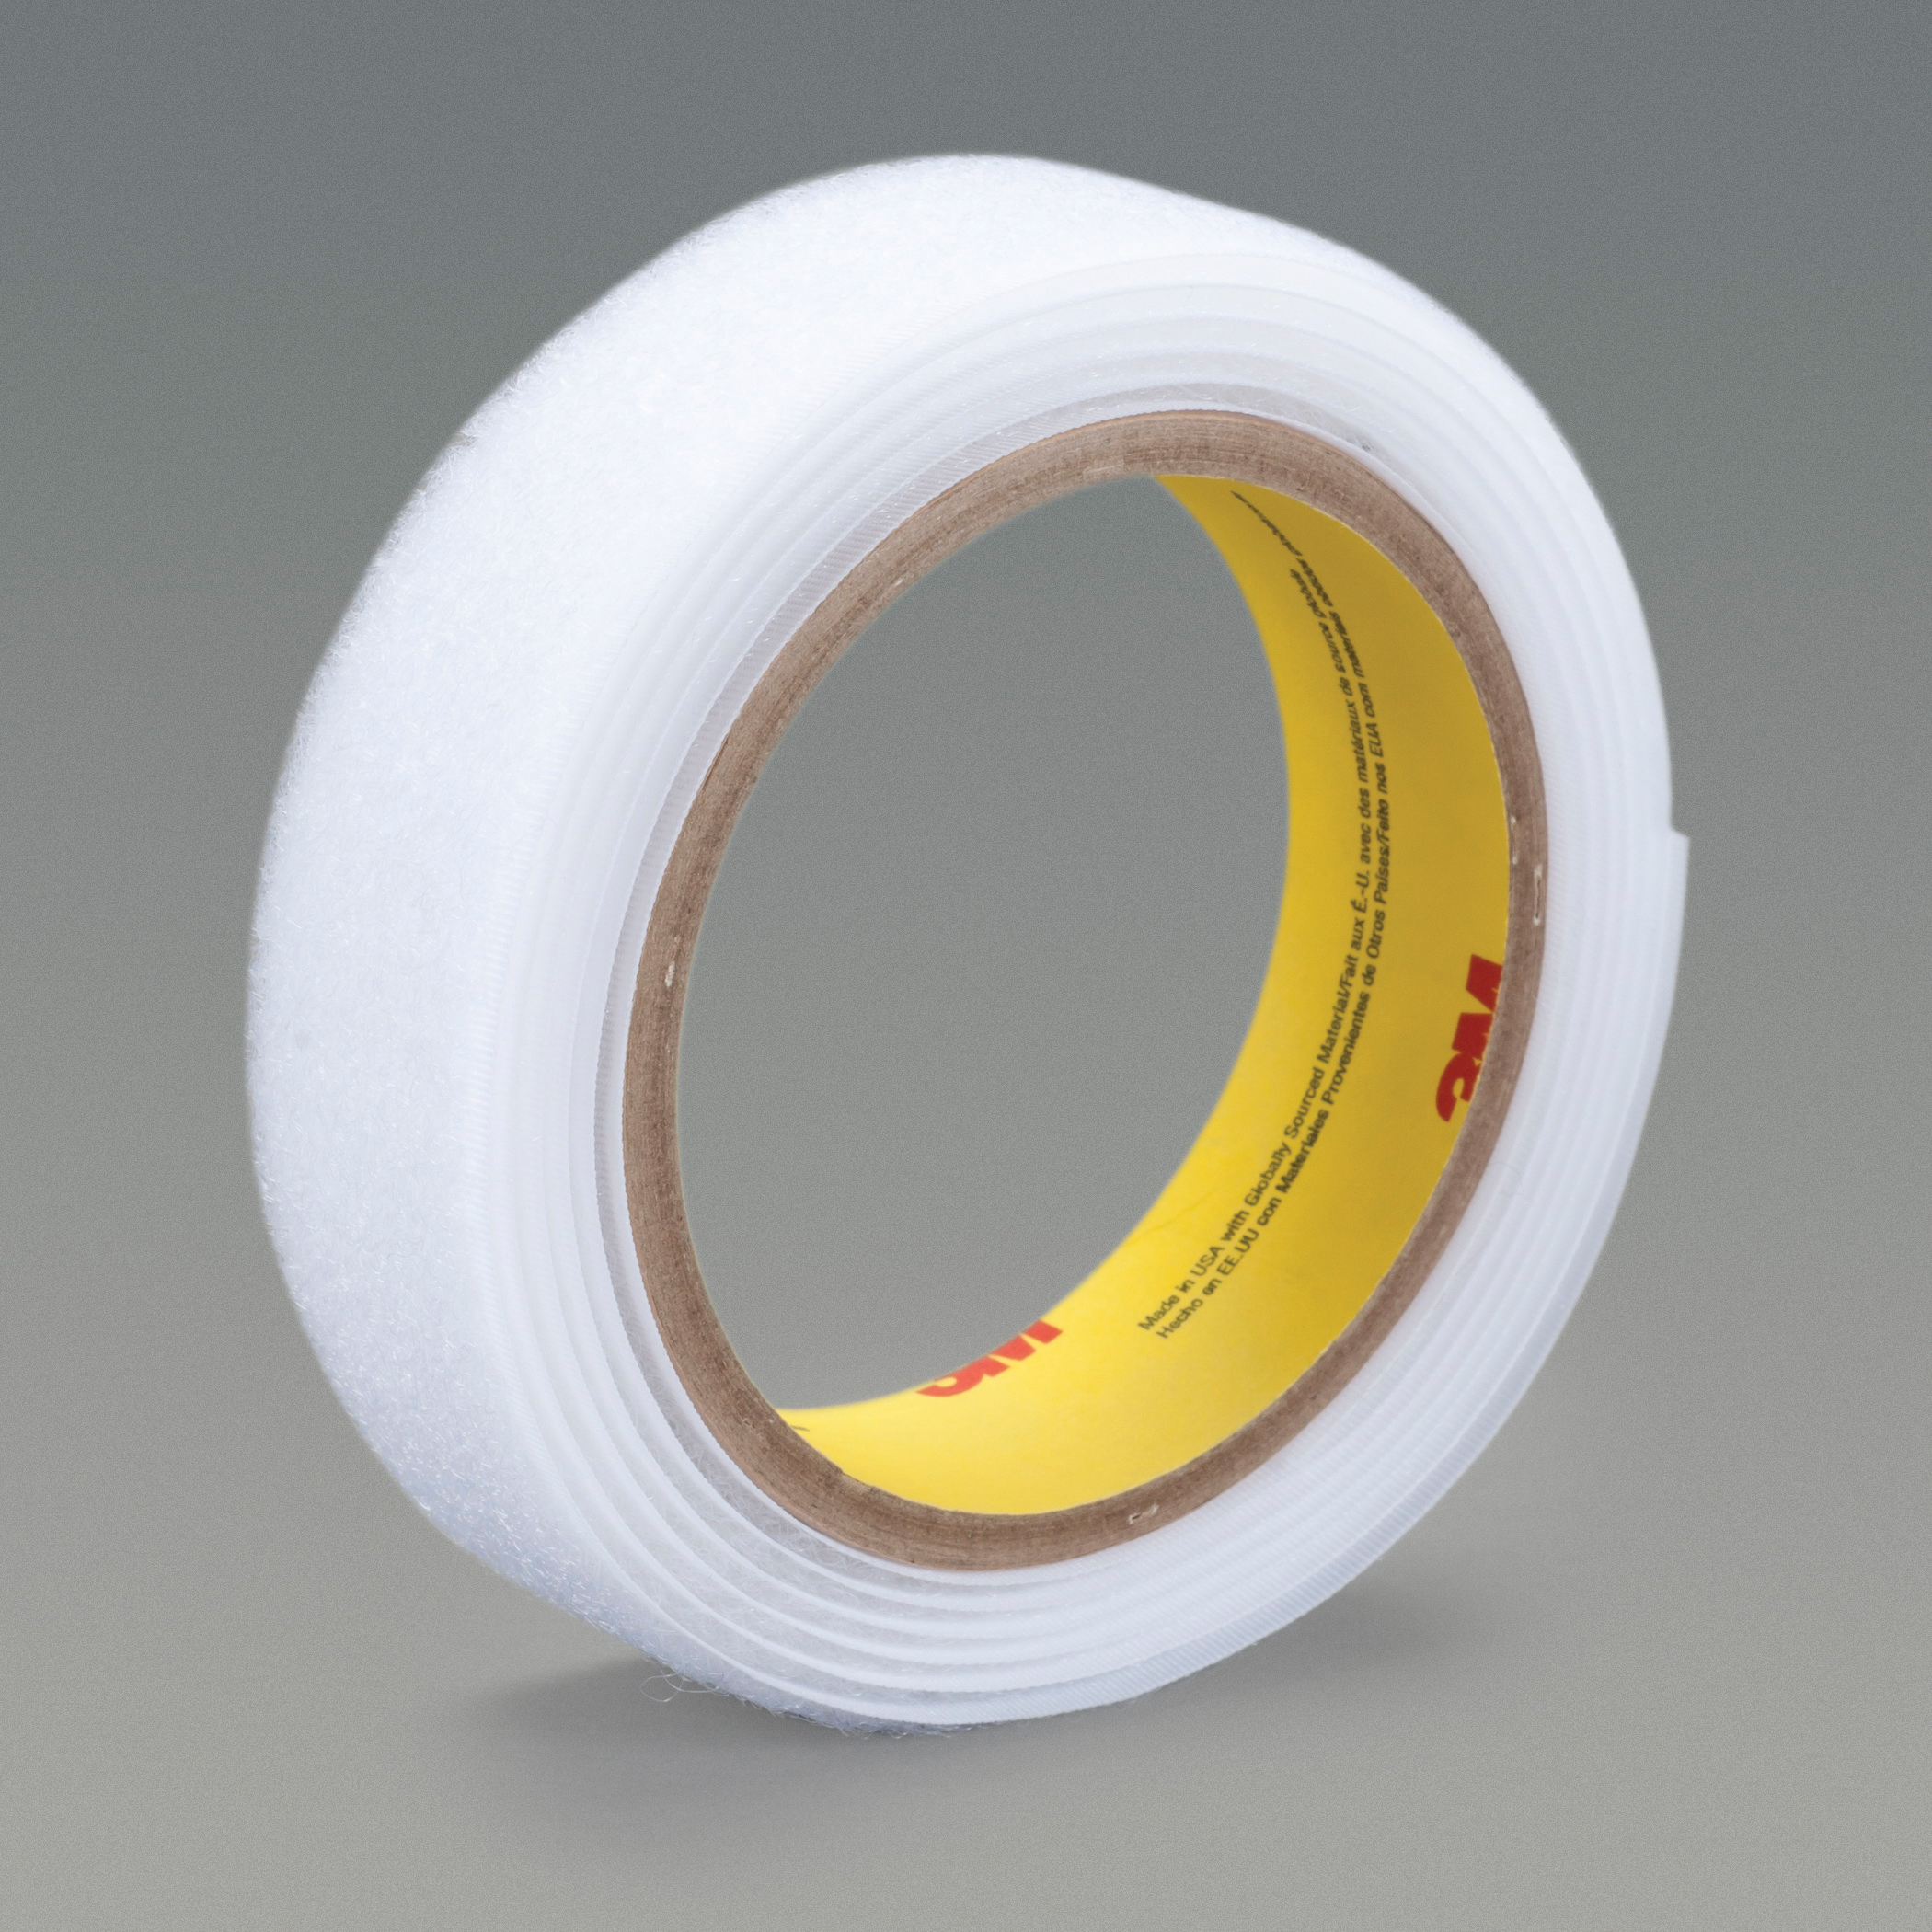 3M™ 021200-65616 General Performance Reclosable Hook Fastener Tape, 50 yd L x 2 in W, 0.15 in THK Engaged, High Tack Rubber Adhesive, Woven Nylon Backing, White